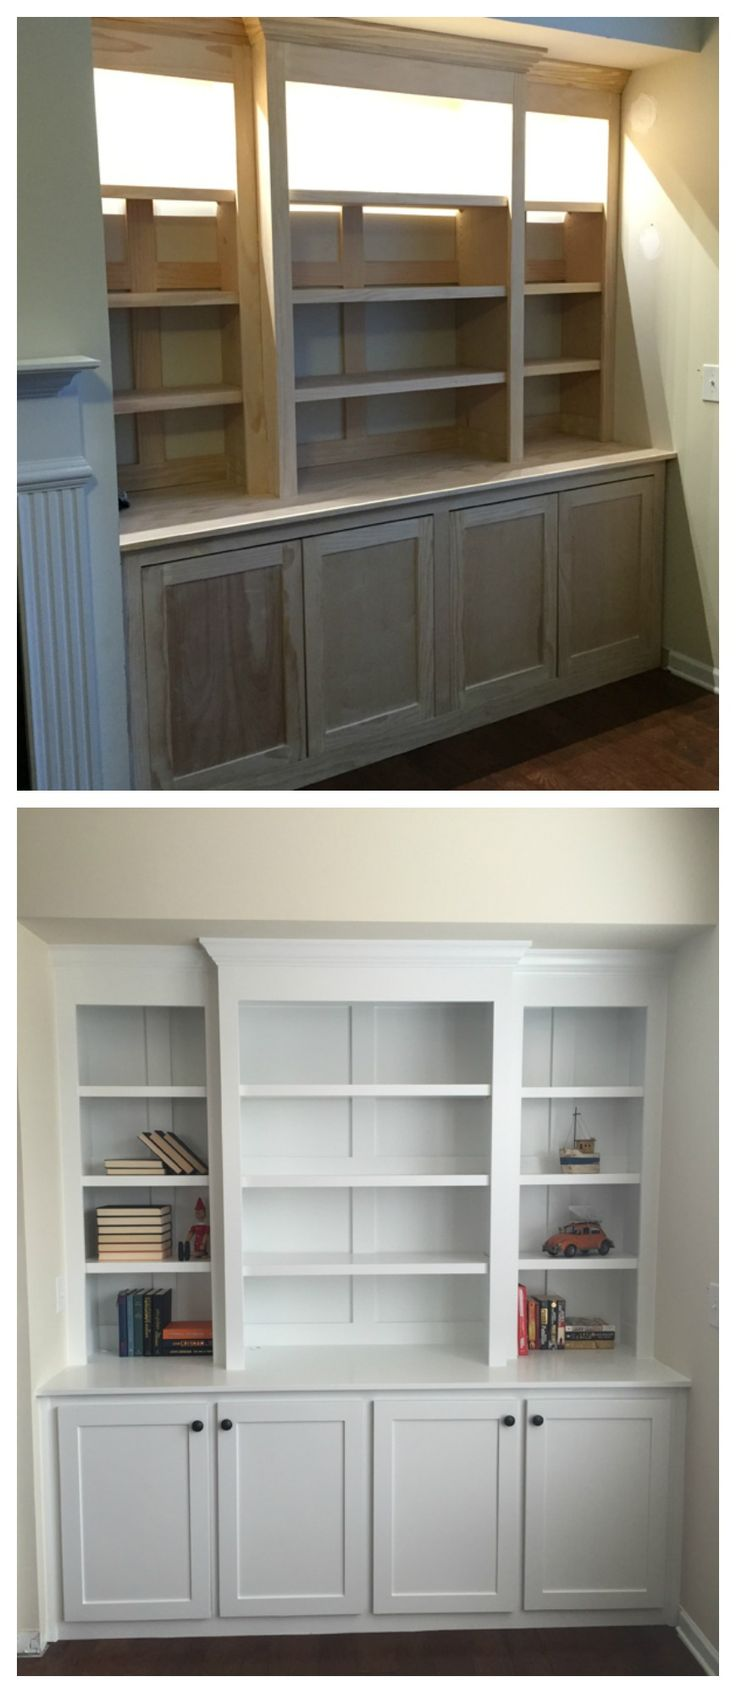 Amazing diy built-in buffet shelving from plywood and pine.